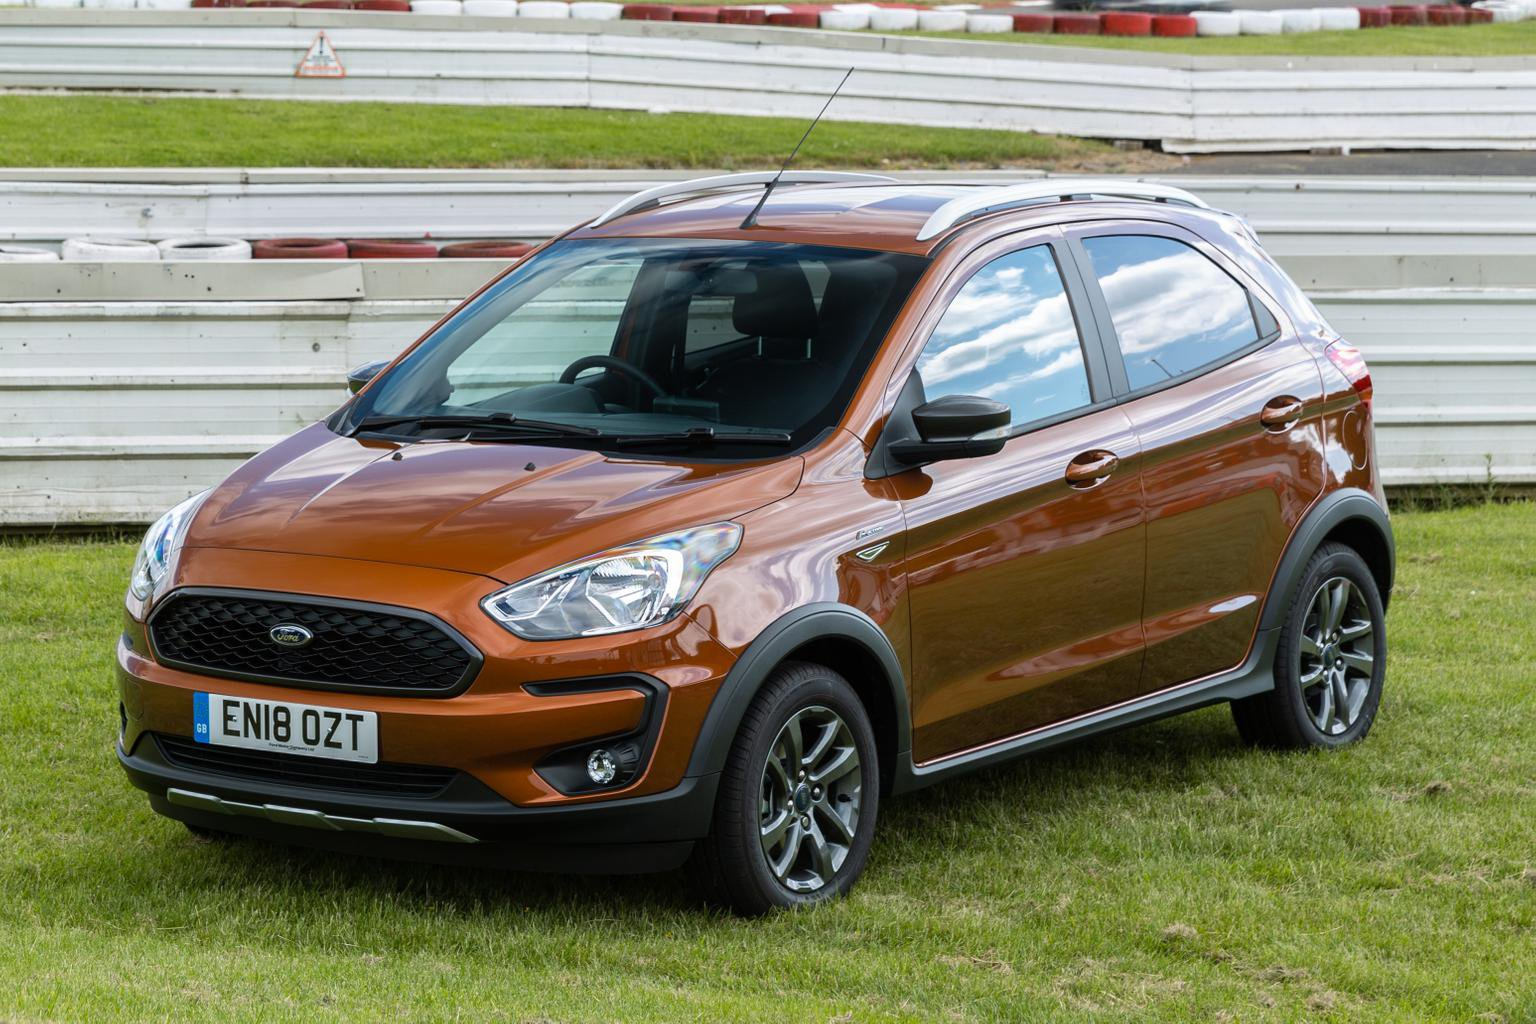 2018 Ford Ka+ Active review - verdict